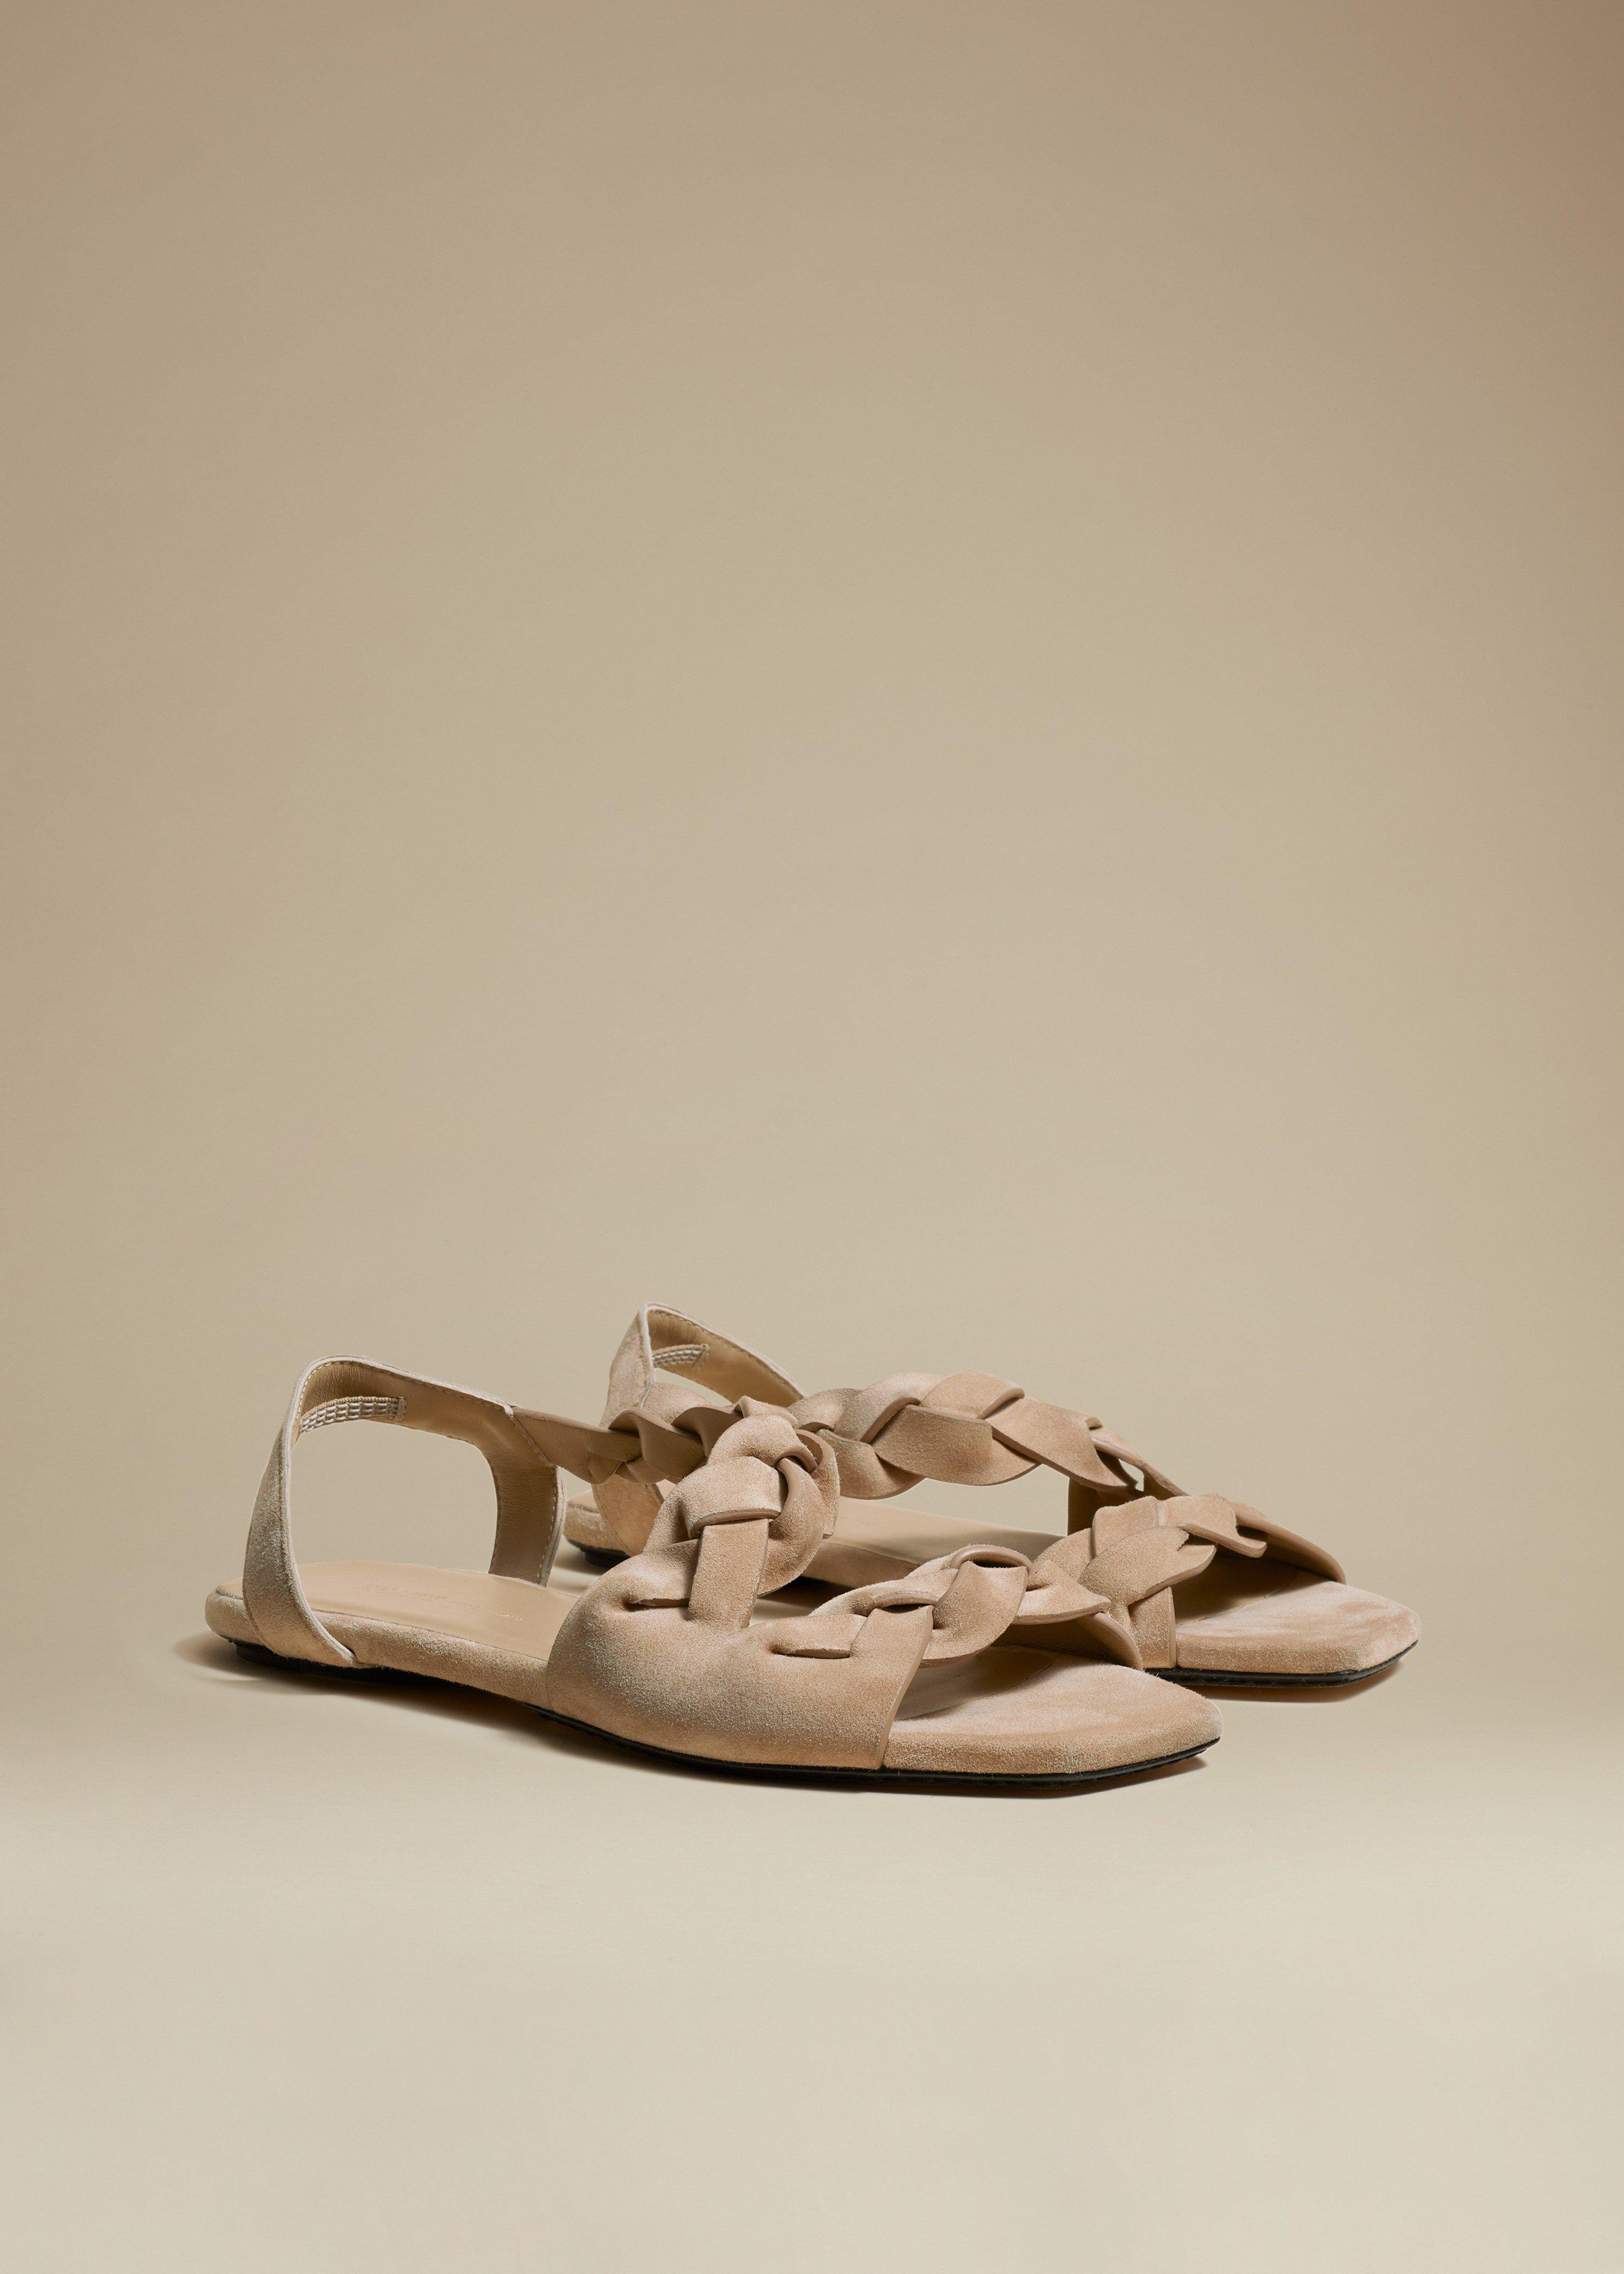 The Torrance Sandal in Biscuit Suede 1